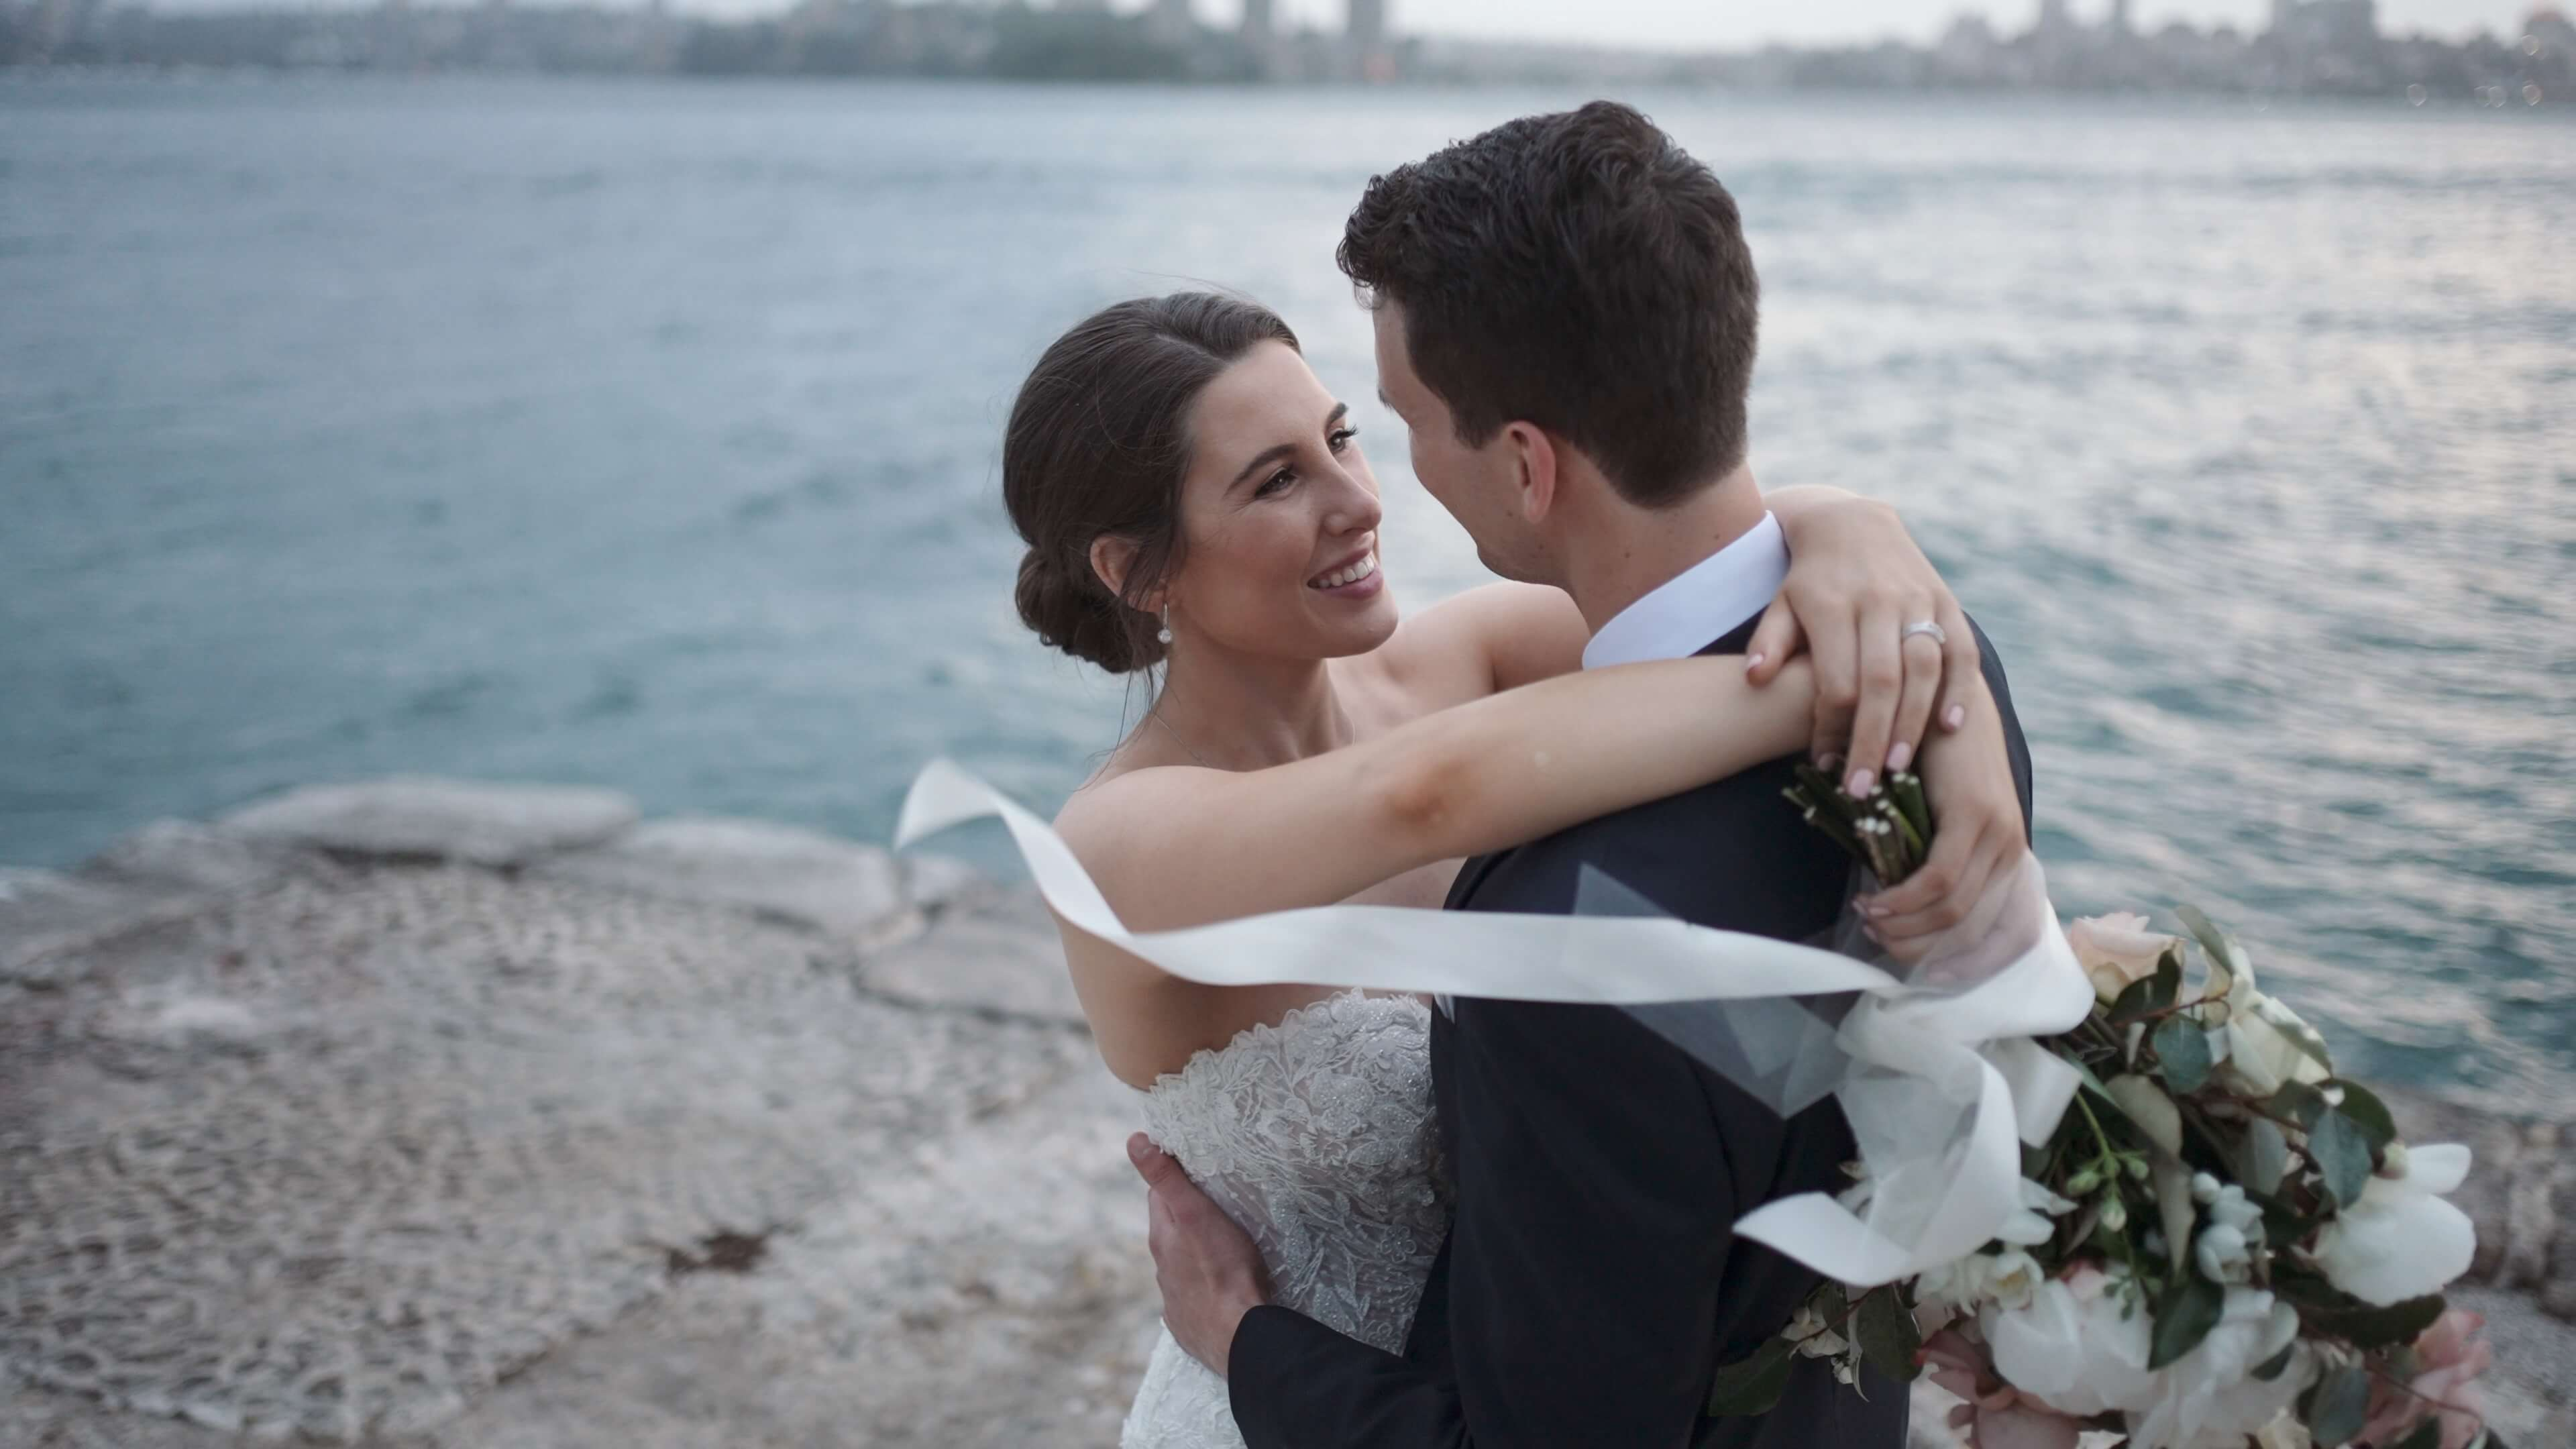 Newly married couple dancing on a pier - wedding videography services in Sydney and surrounding areas - Lovereel